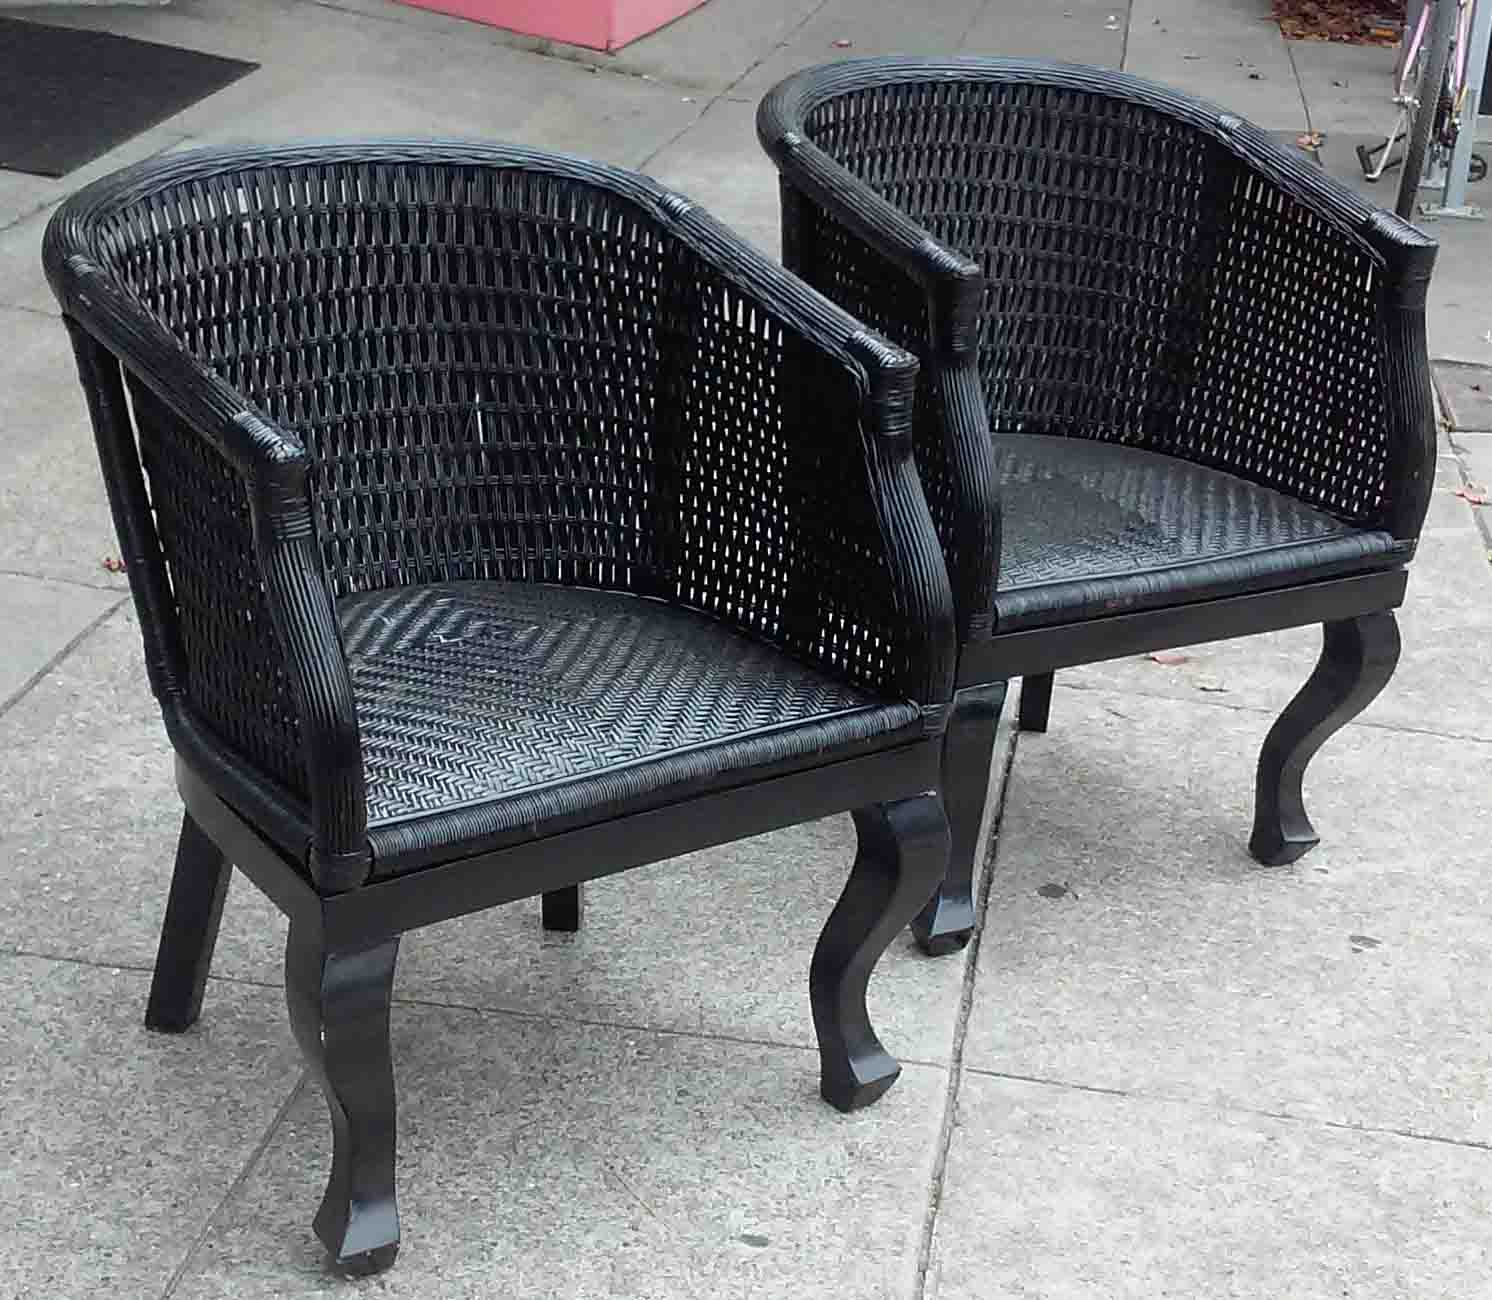 Black Wicker Patio Chairs Inspiration